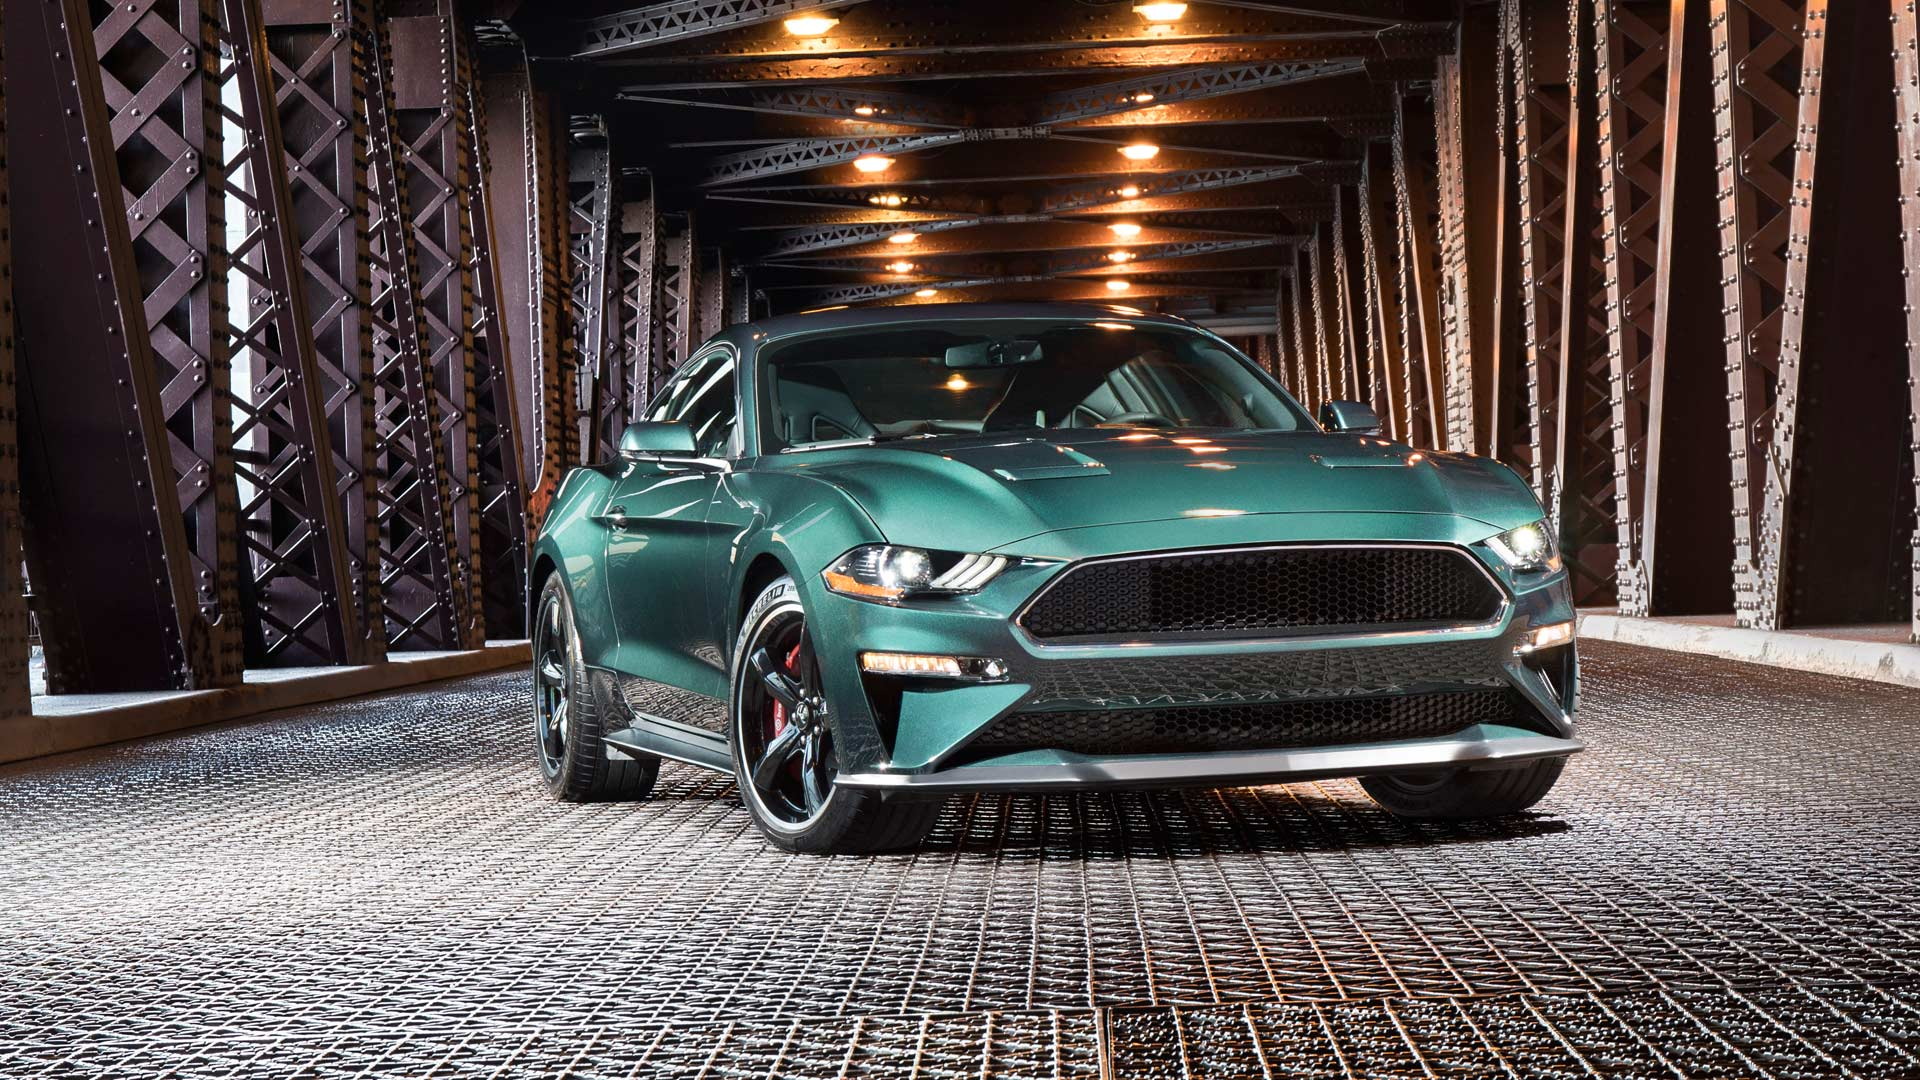 2019 Ford Mustang Bullitt Is A 50th Anniversary Thriller